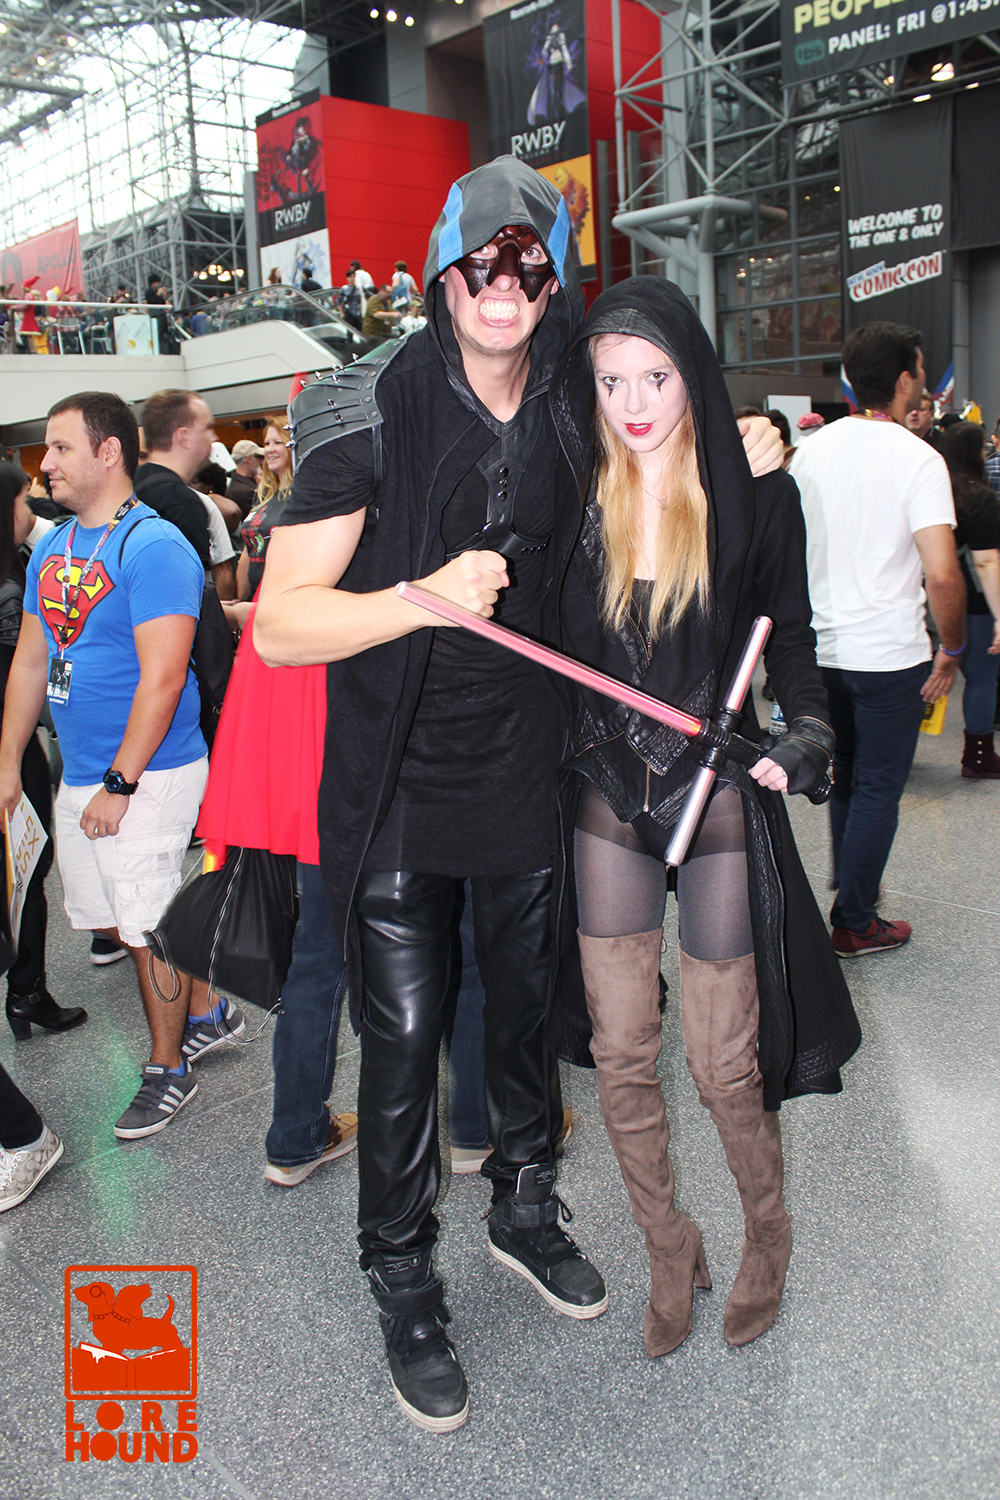 NYCC 16 33